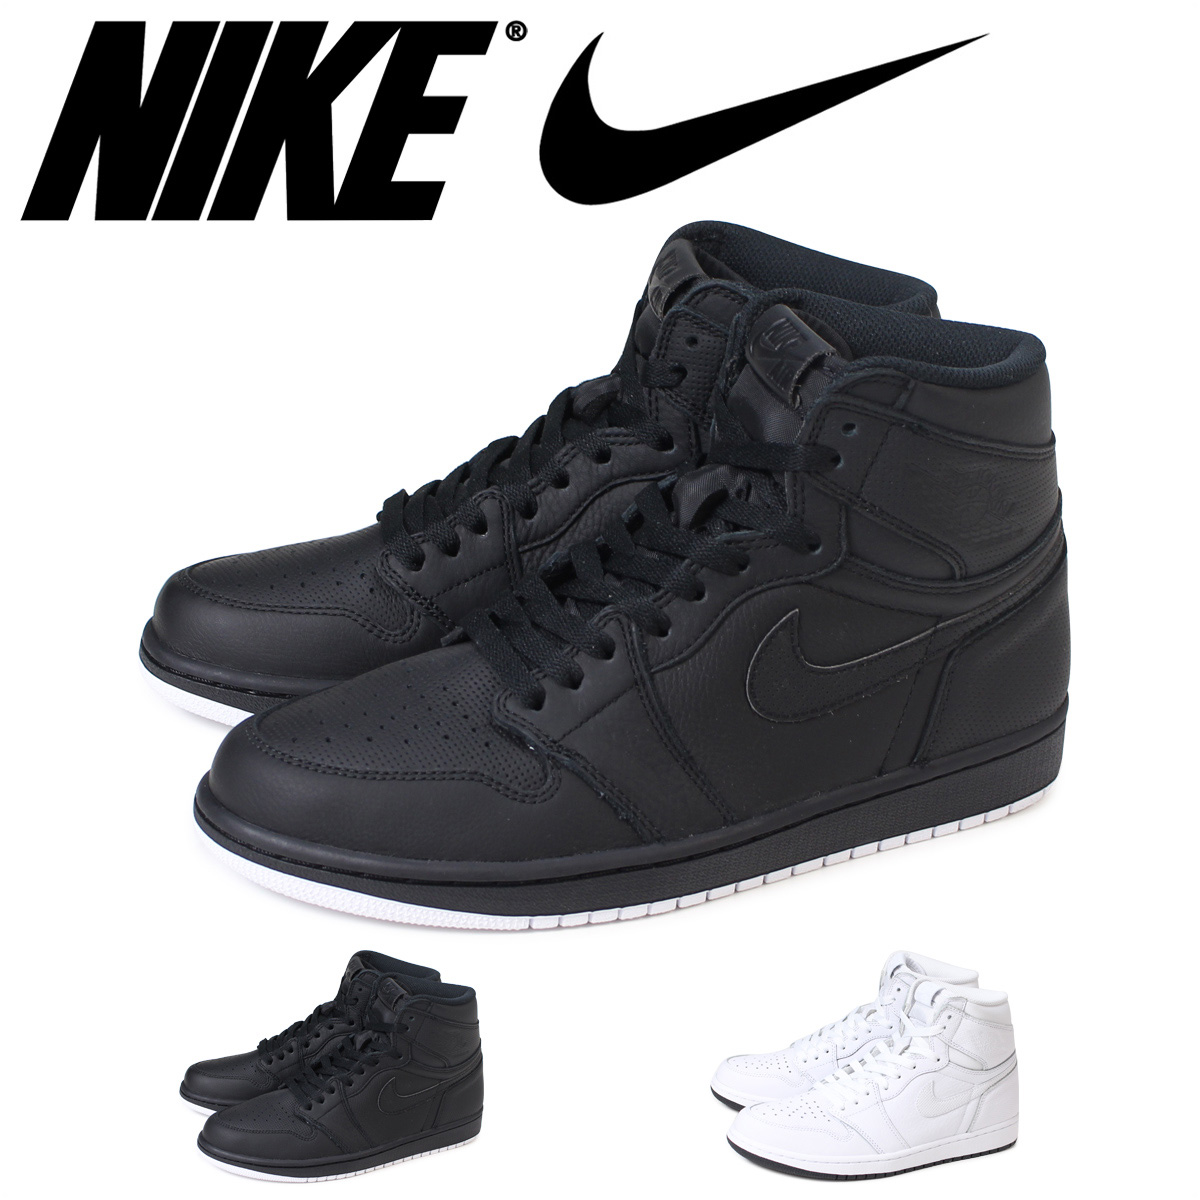 Nike NIKE Air Jordan 1 Nostalgic High Sneakers AIR JORDAN RETRO HI OG 555088 002 100 Mens Shoes Load Planned Shinnyu In Reservation